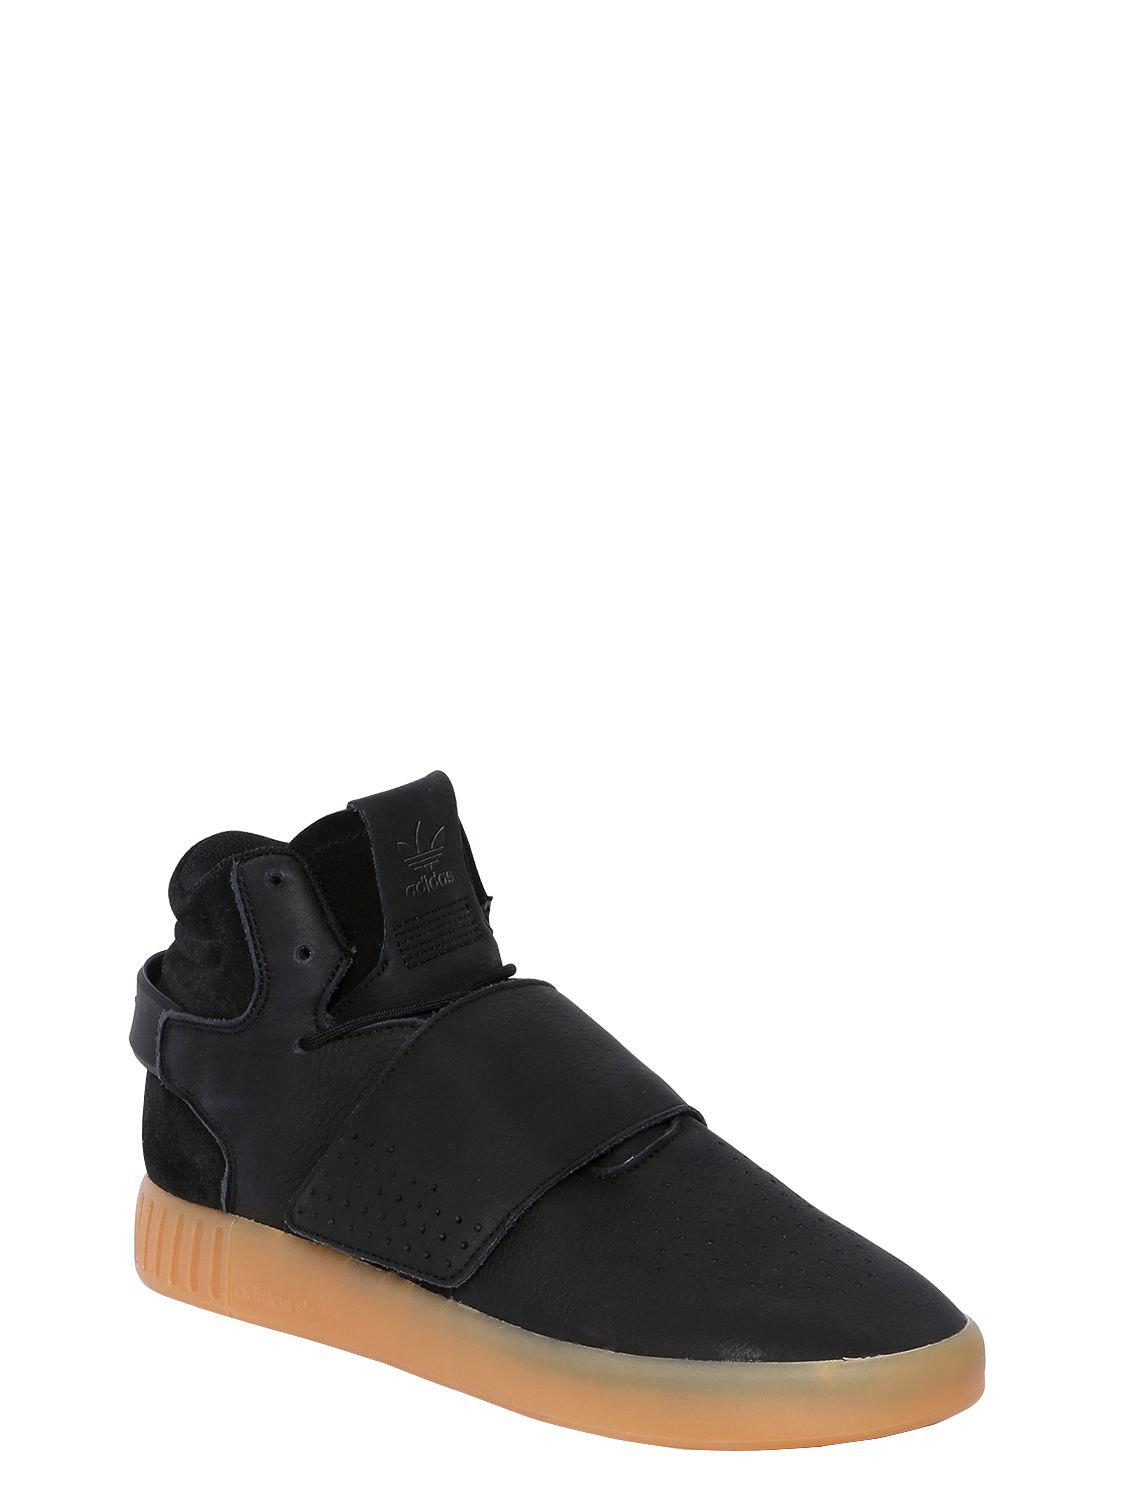 Lyst - adidas Originals Tubular Invader Strap Mid Top Sneakers in Black for  Men 26ce5f41a